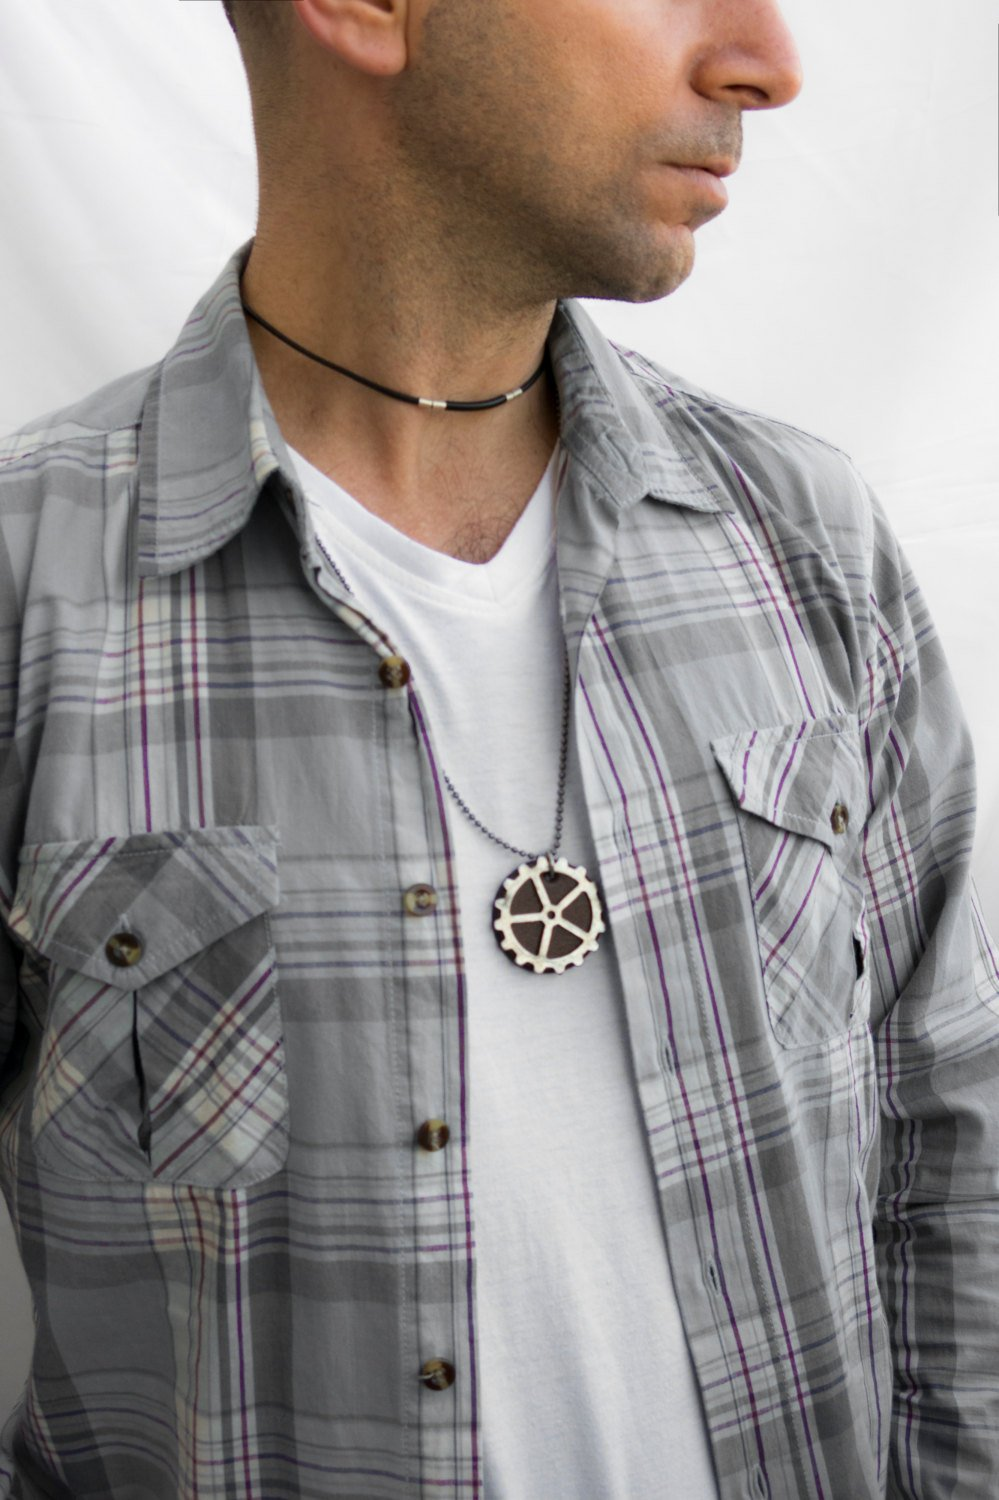 Men's Necklace - Men's Silver Necklace - Men's Leather Necklace - Men's Jewelry - Men's Gift